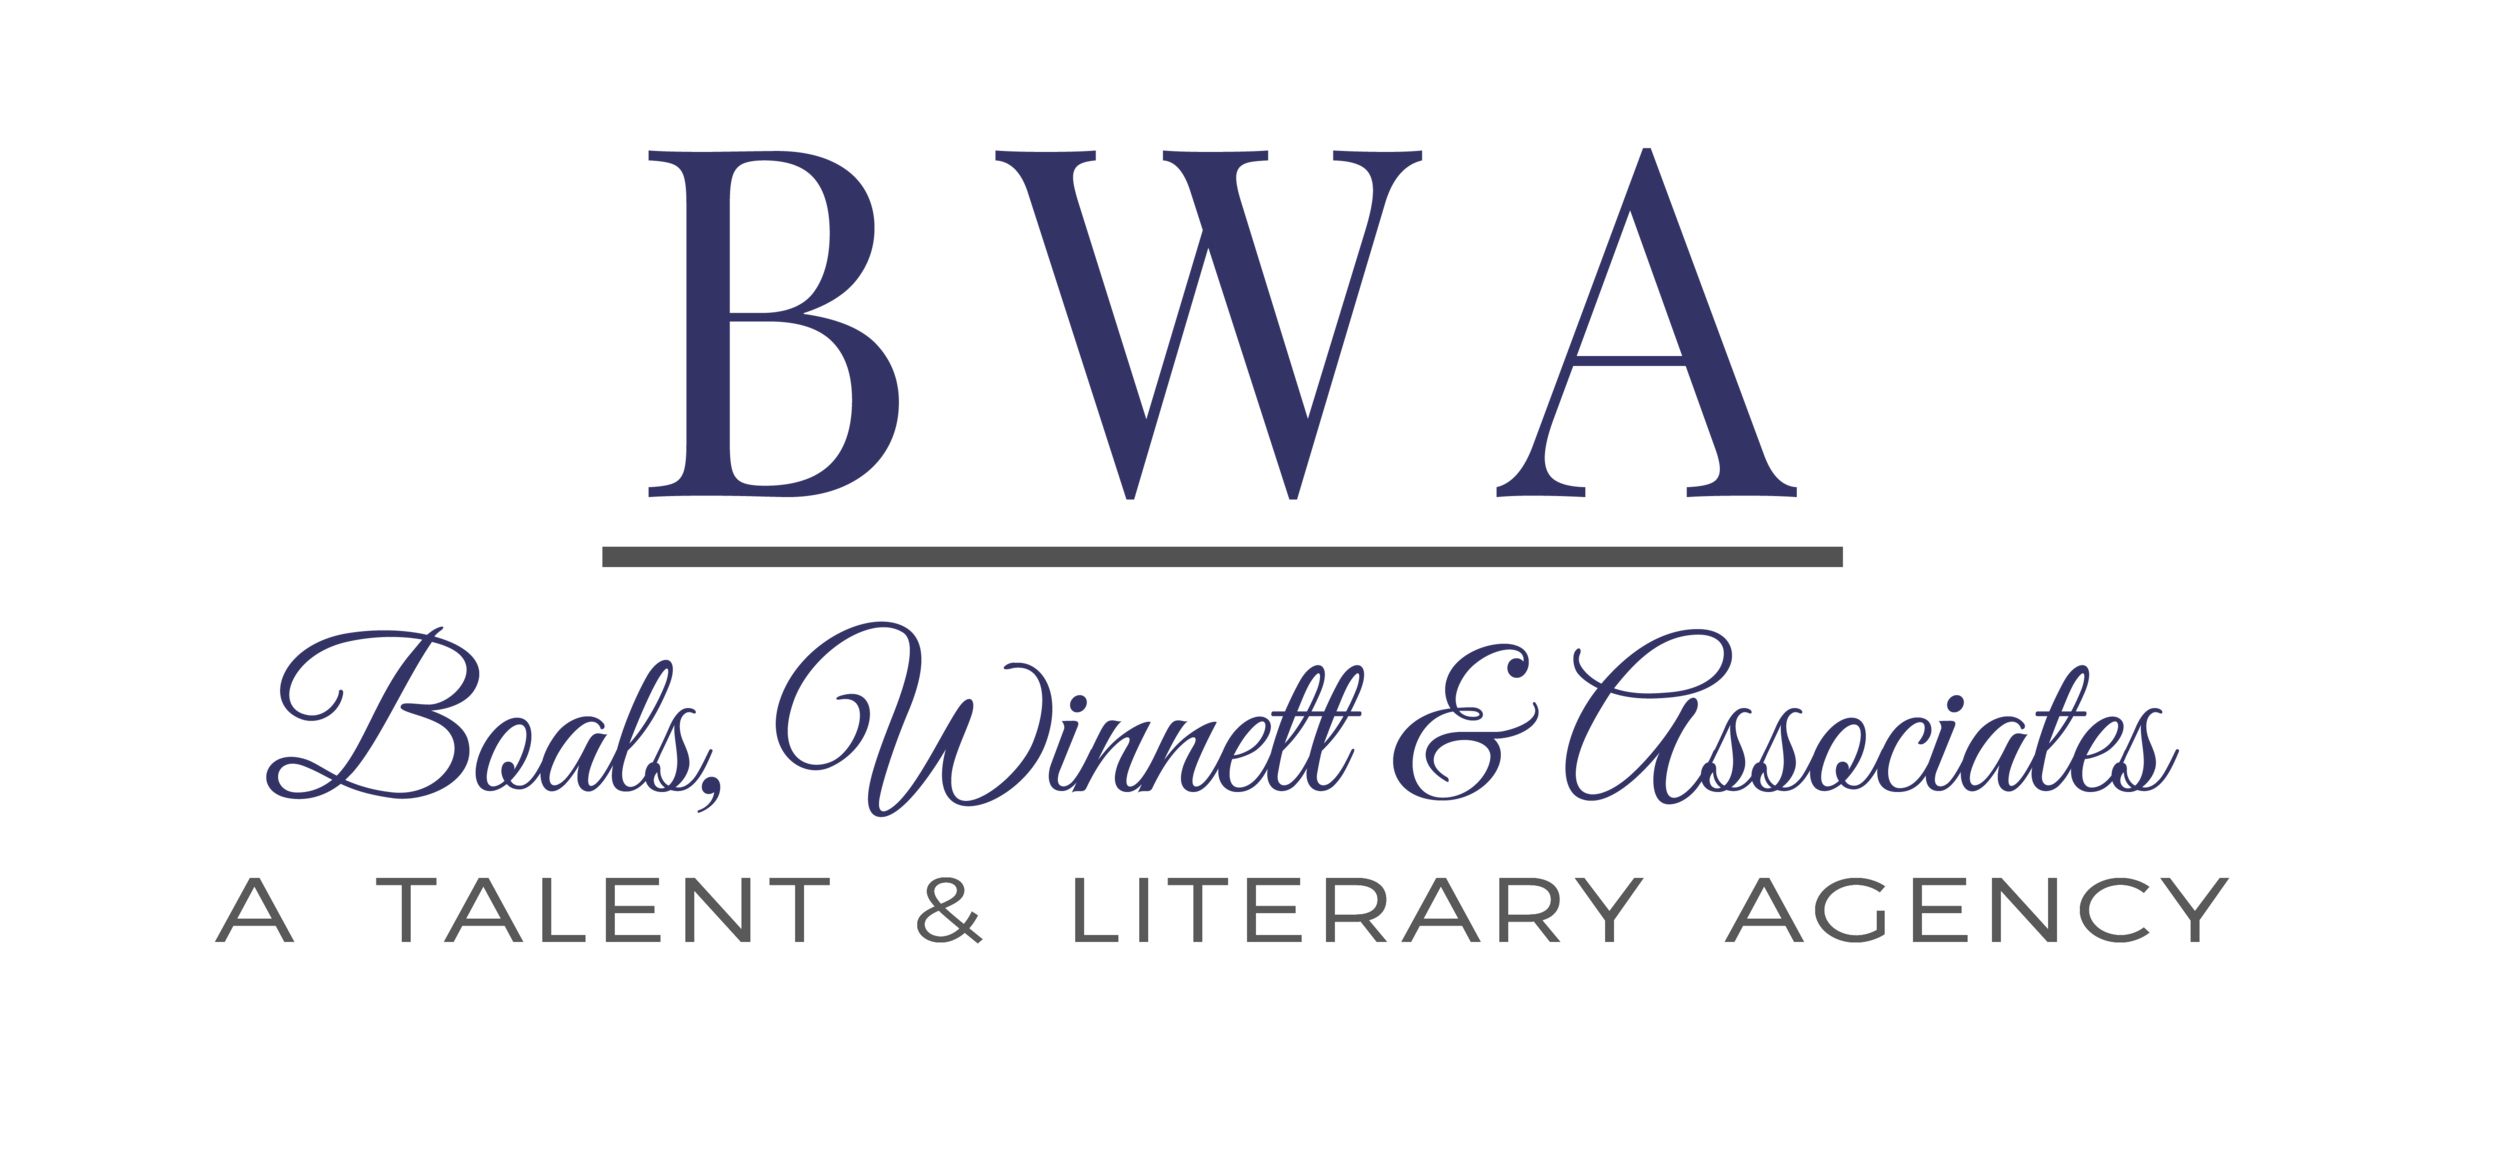 BWA transparent background logo.png